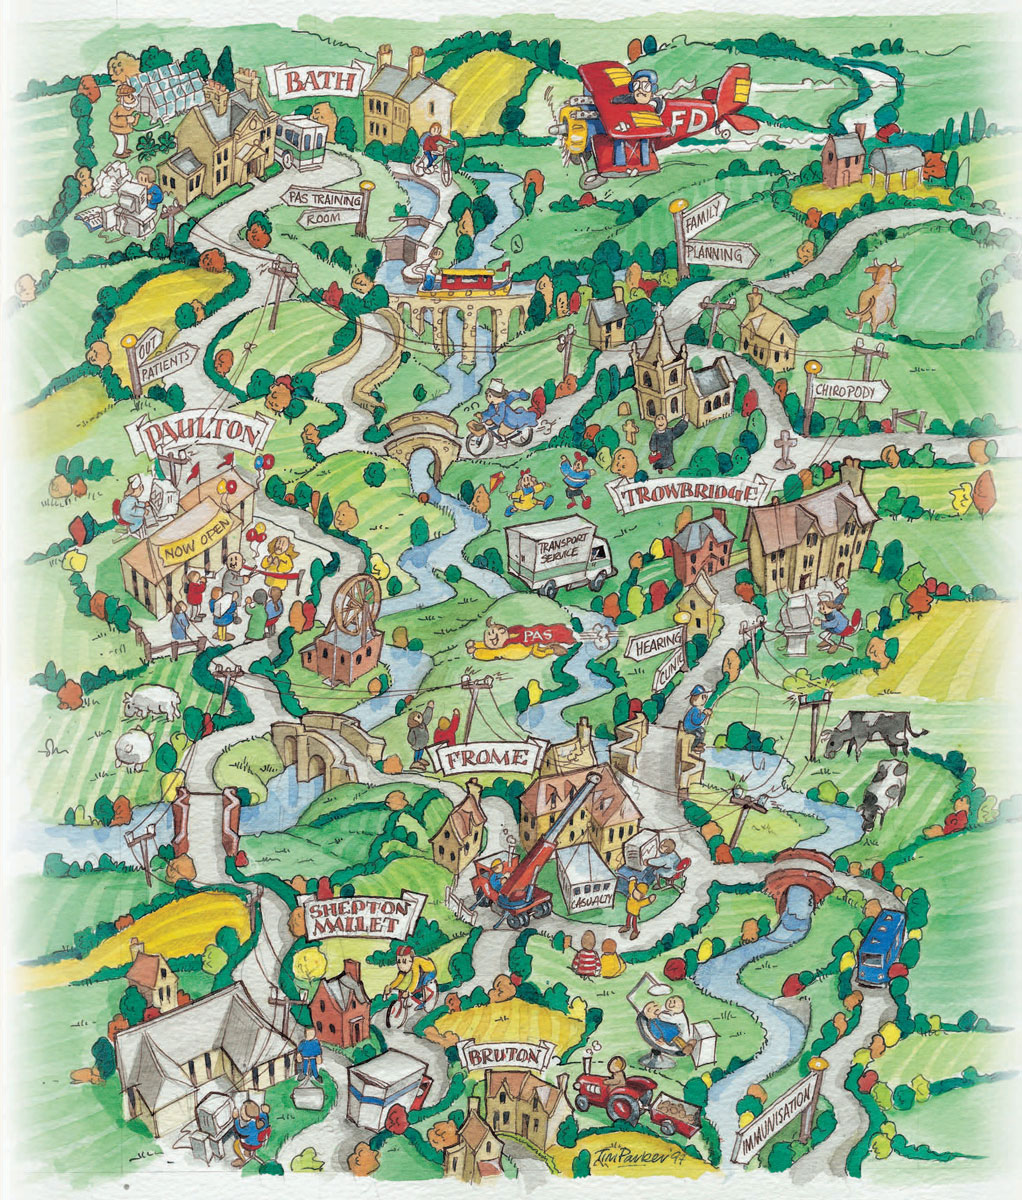 Bath and North East Somerset illustrated map commissioned by local Health Trust.